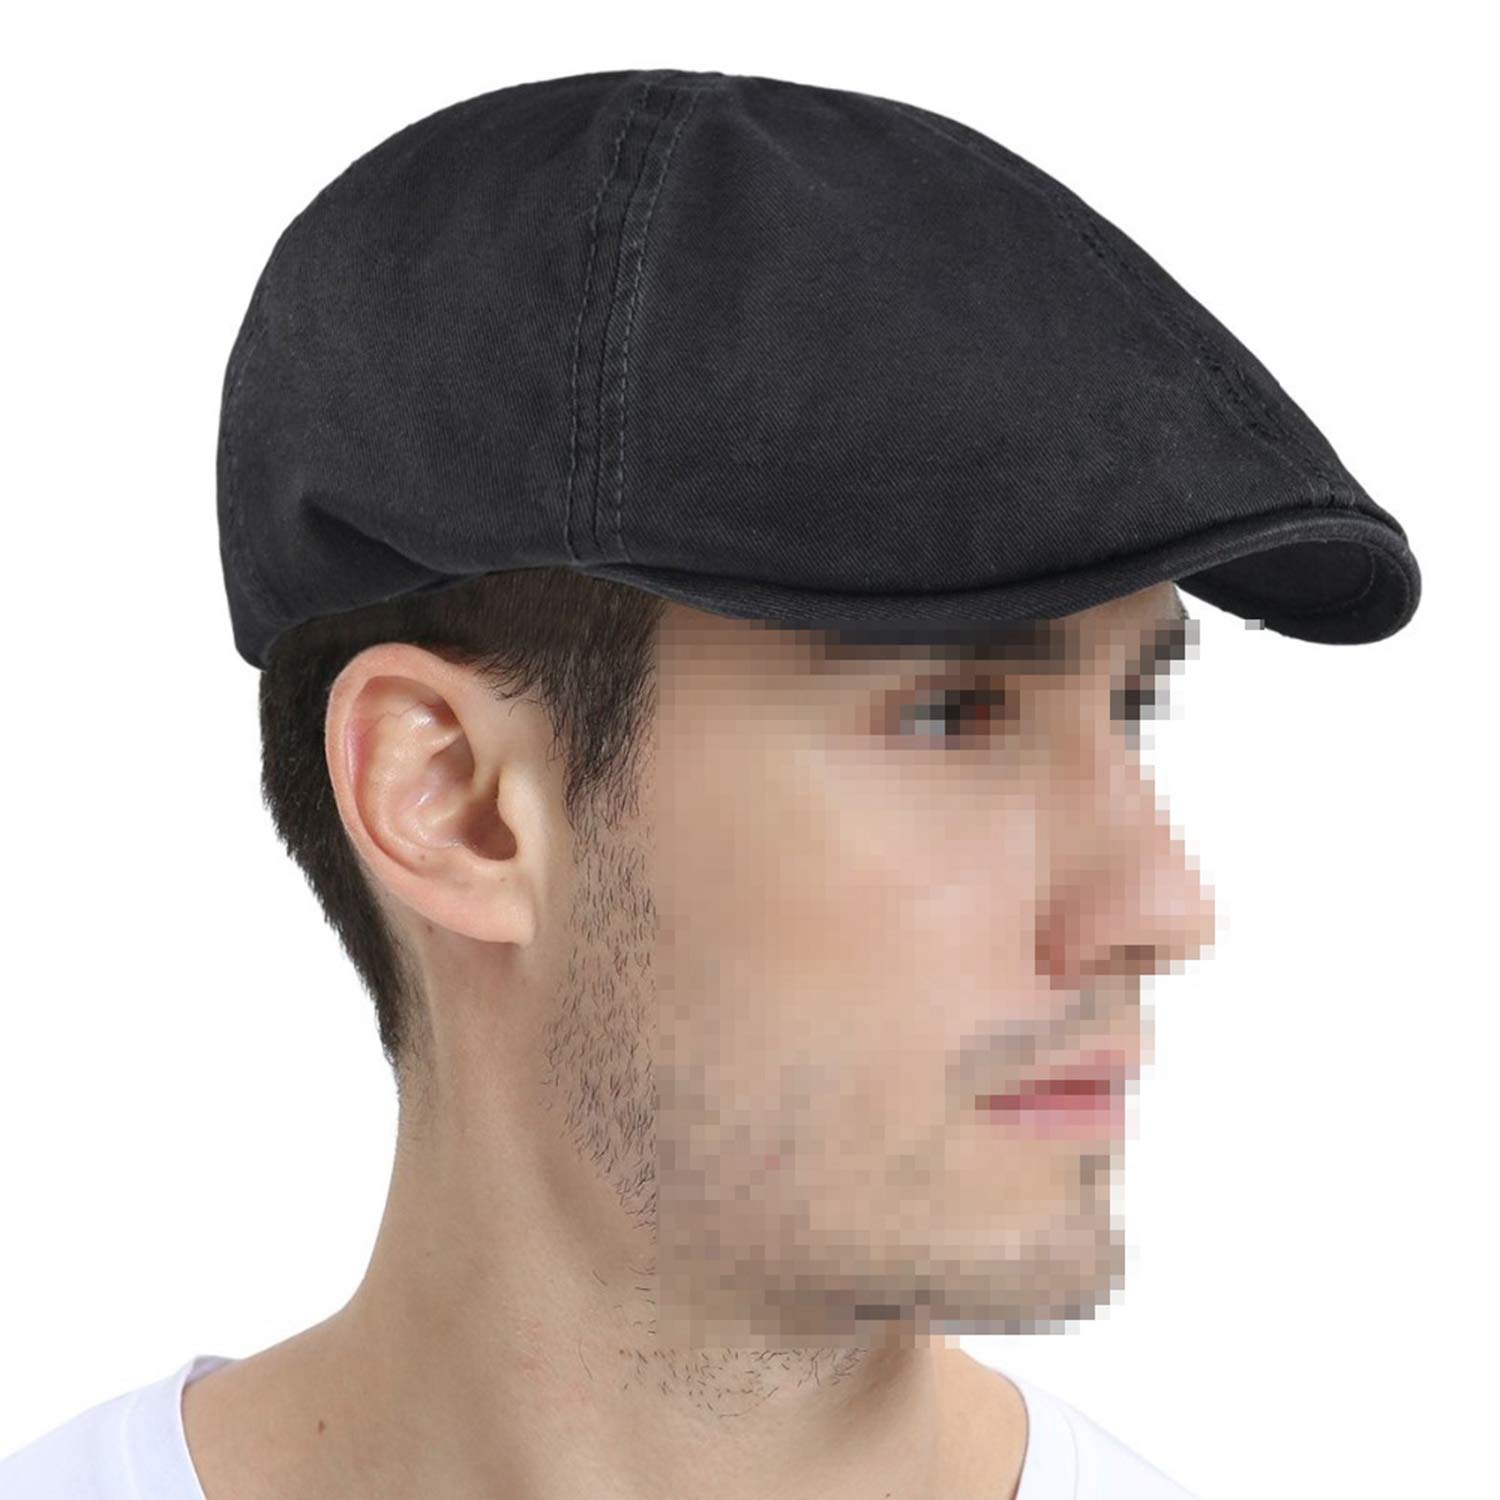 Cotton Ivy Flat Cap Berets Spring Summer Men Women Solid Casual Driver Cooker Retro Male Female Boina 063